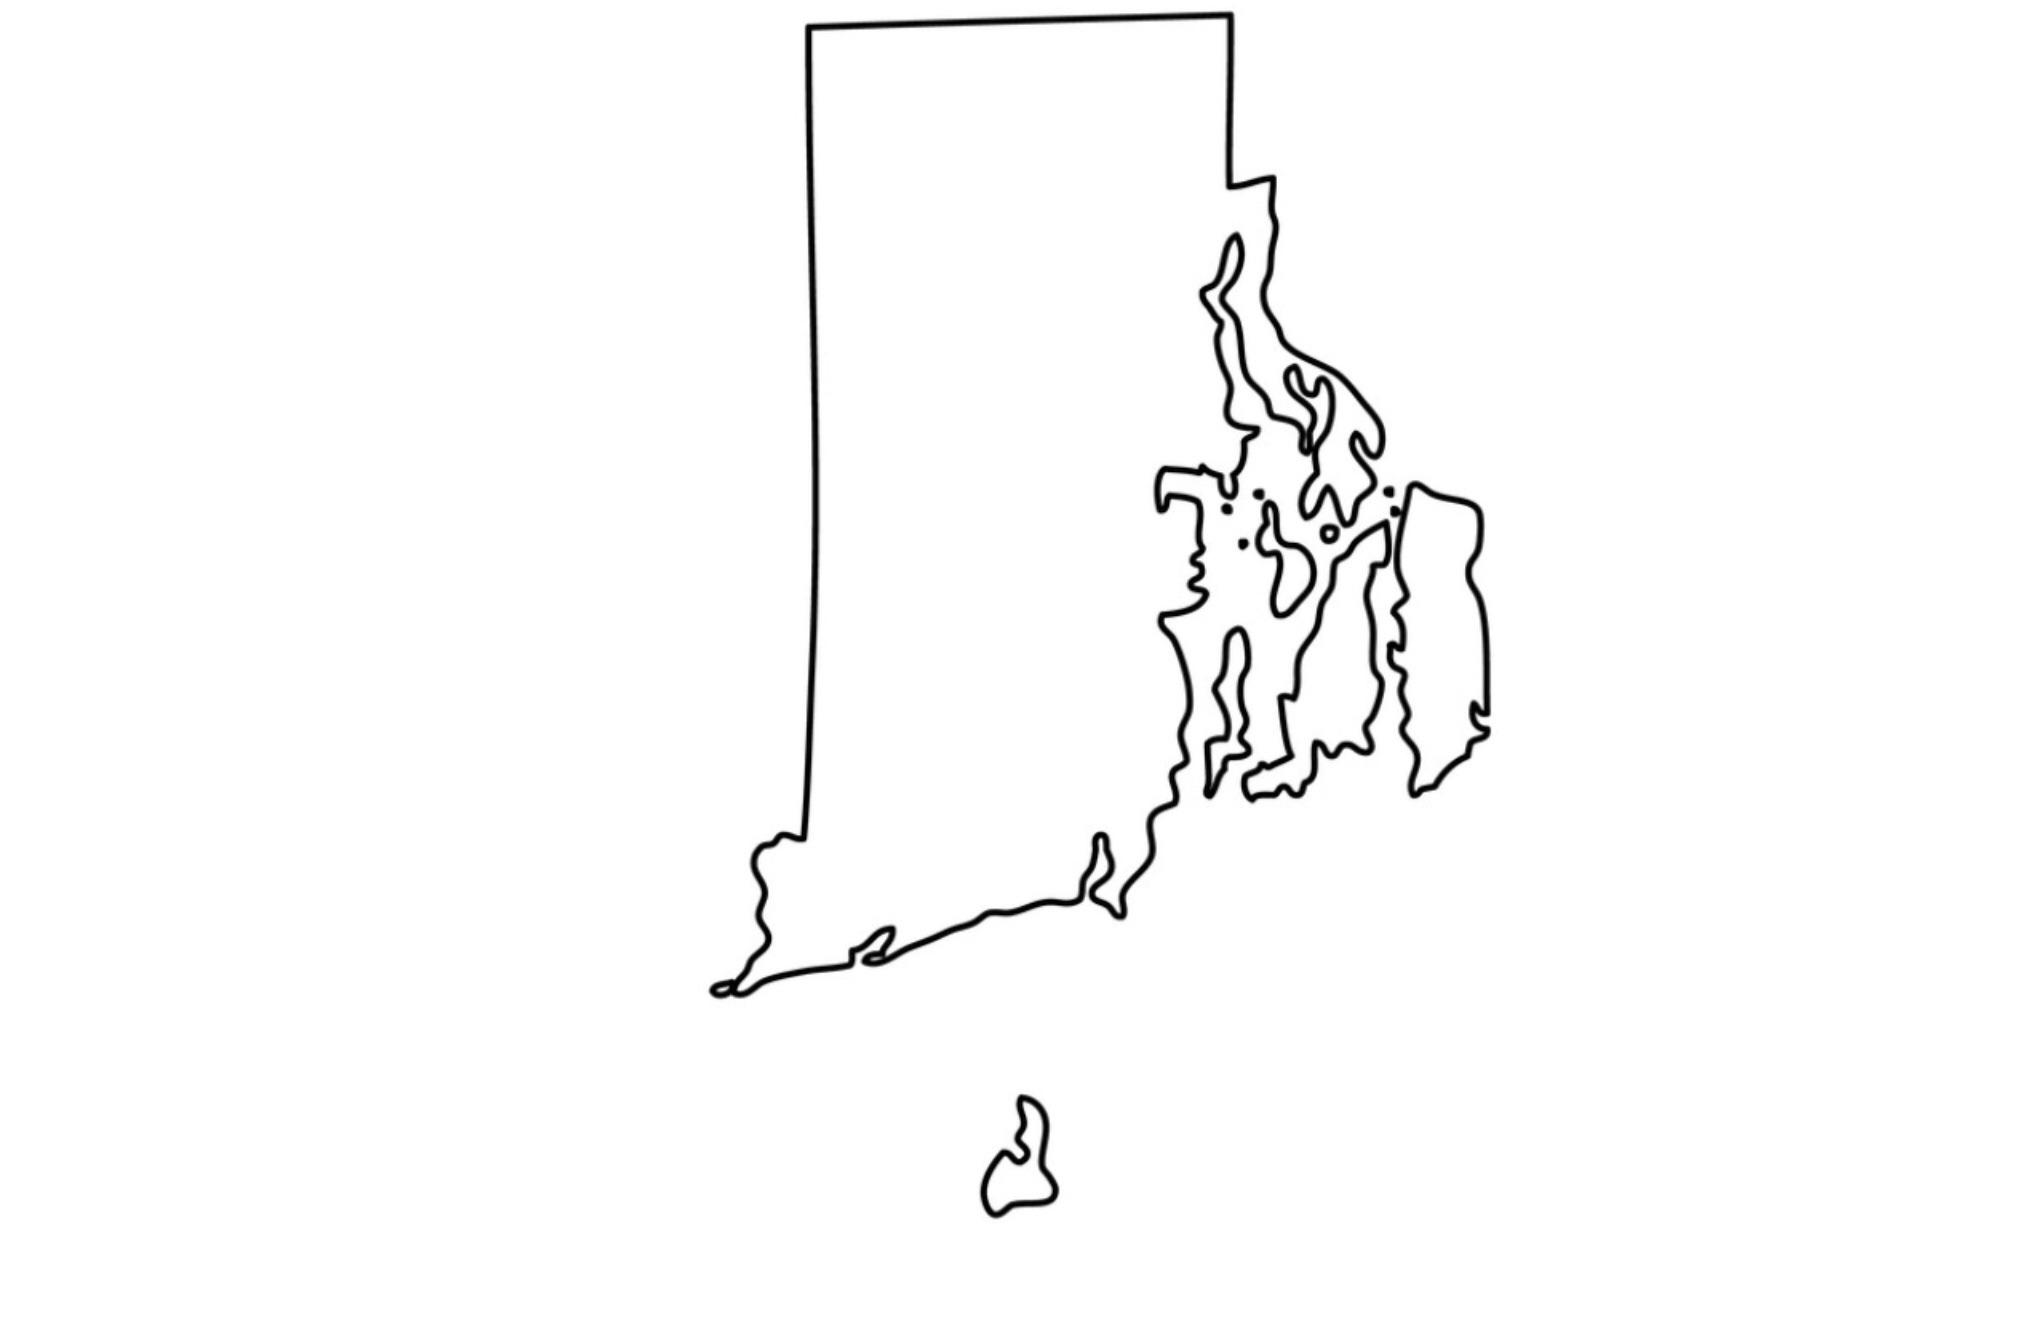 Map of the United States if Rhode Island became the